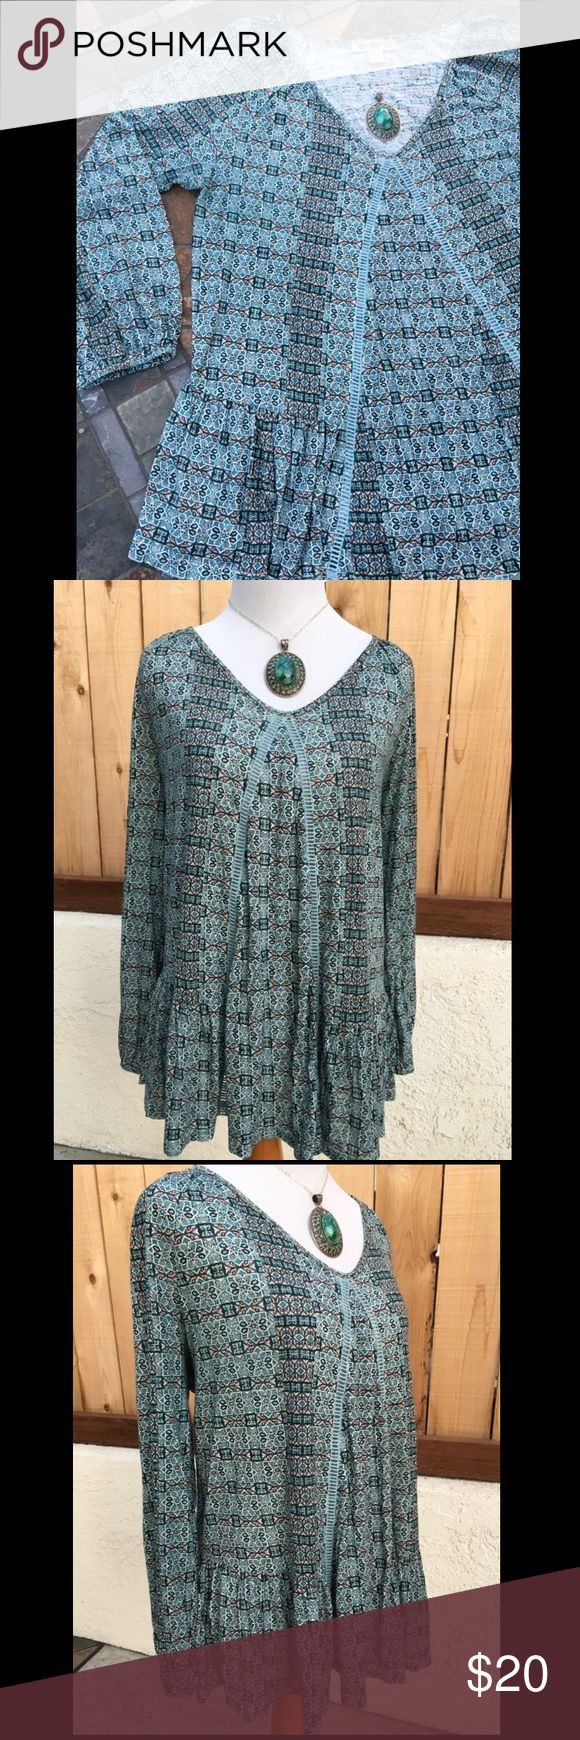 Teal Long Sleeve Smock Top Teal & grey smock top. Soft flowy 100% Cotton. In excellent like new condition. NO spots, holes or other damage. Price cut was $20. Vintage America Tops